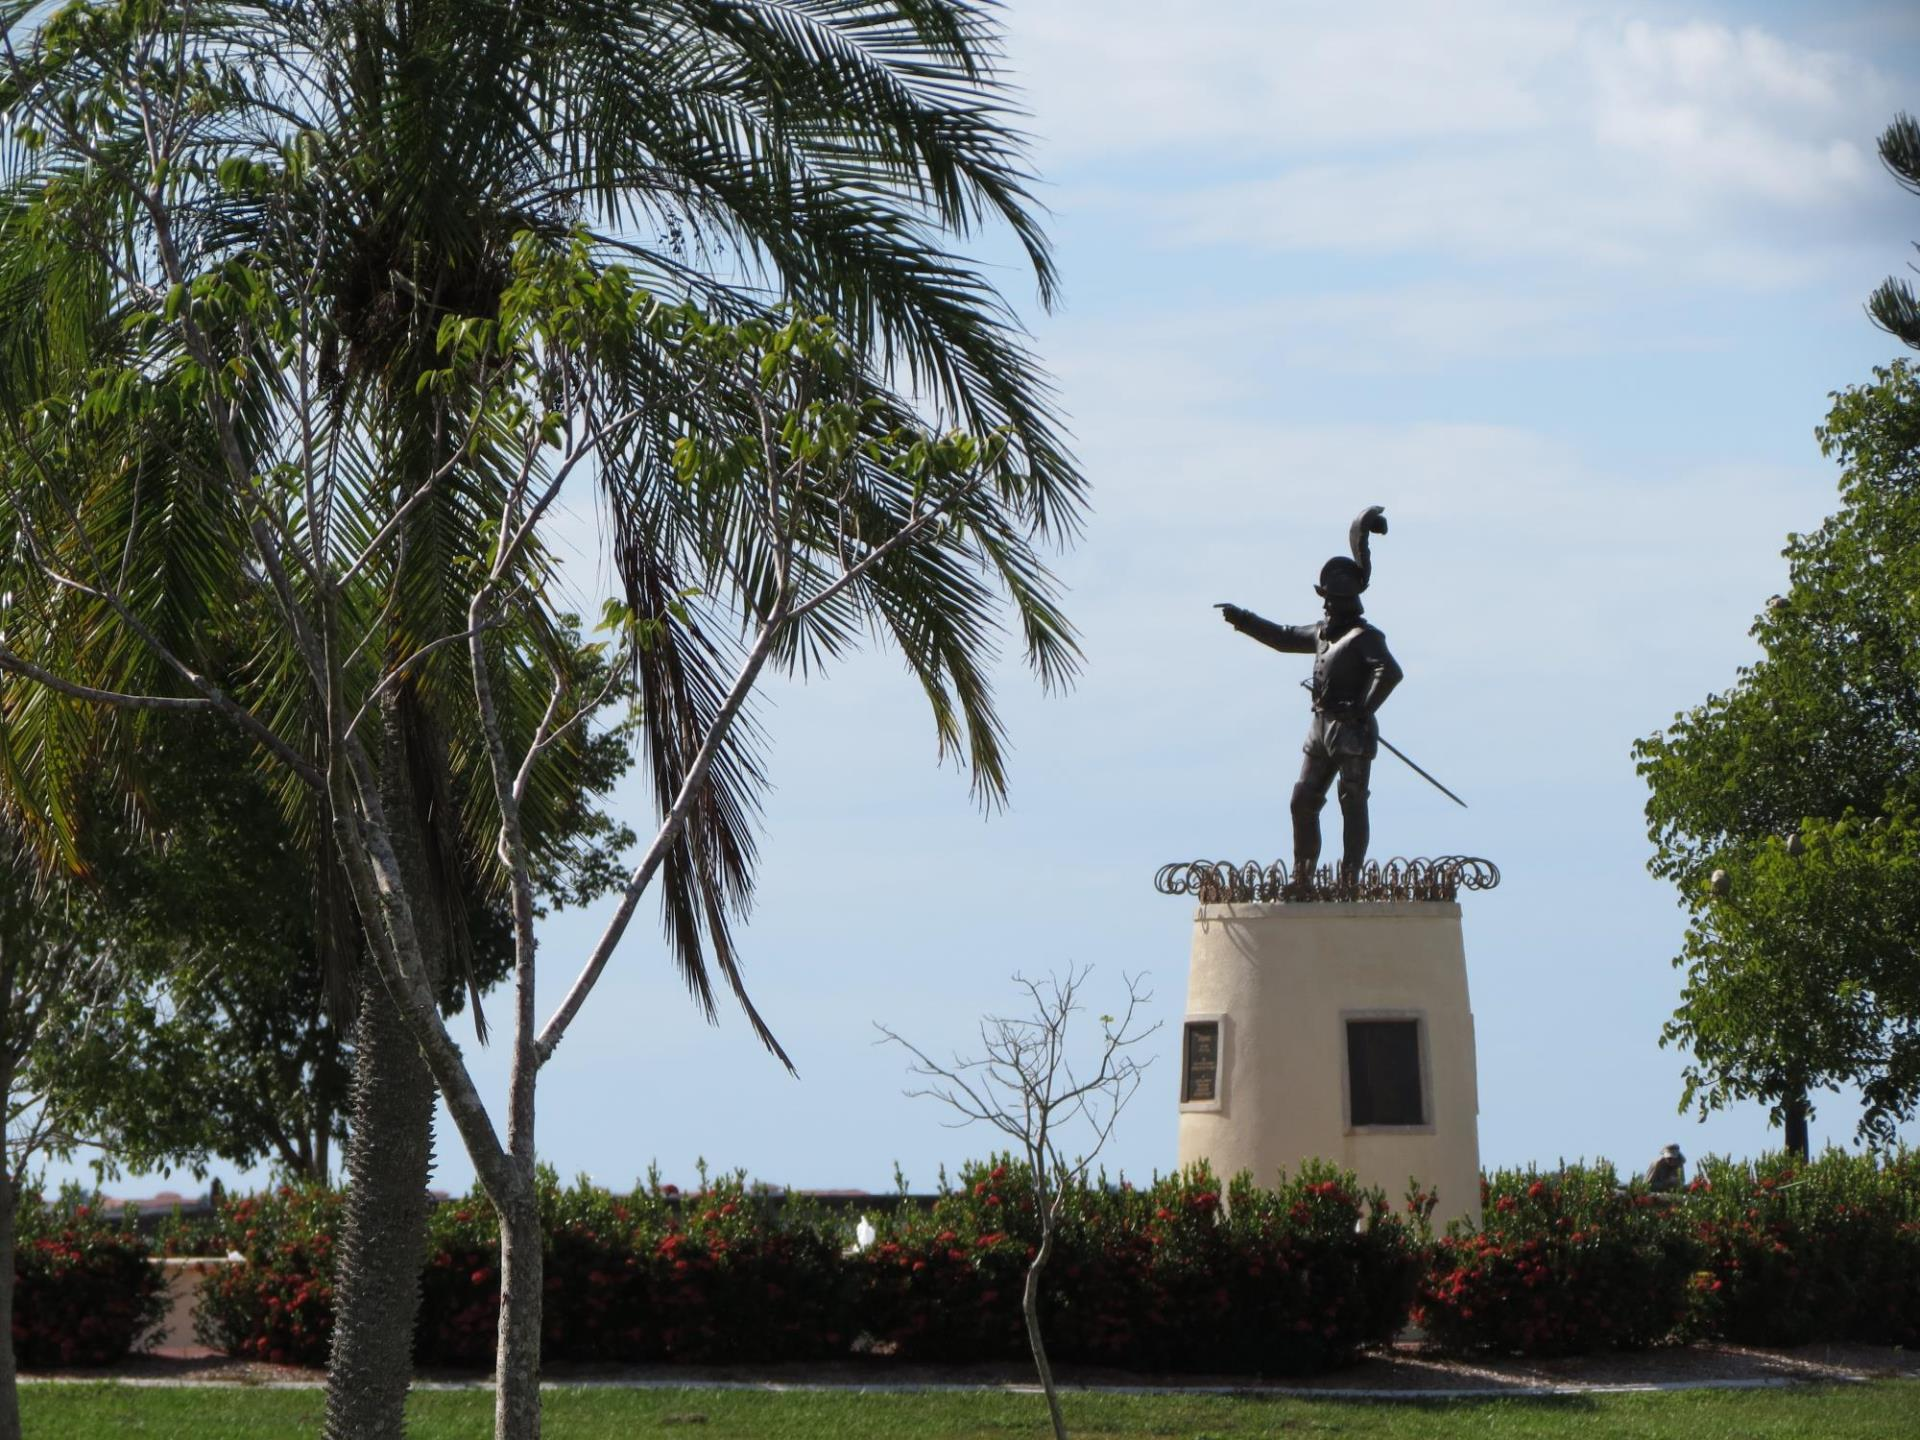 ponce statue next to palm tree